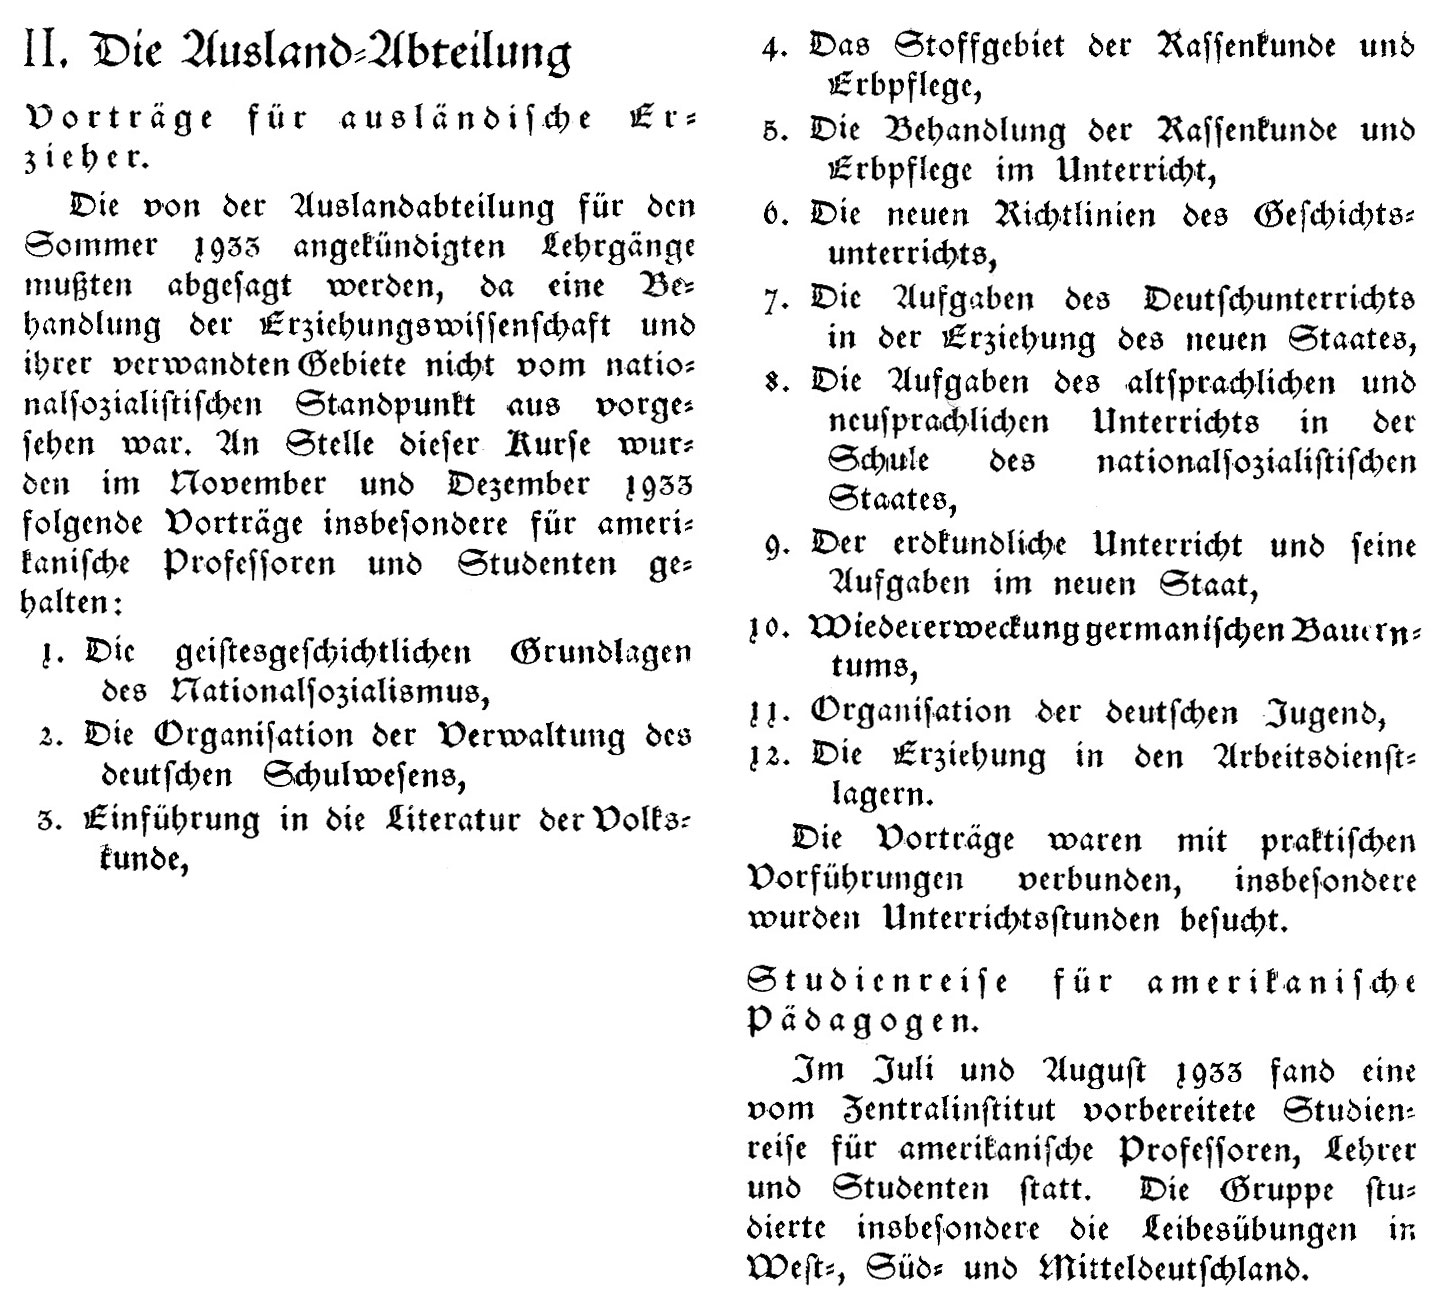 Figure 15: Extract from the annual activity report of the ZEU for 1933/34, 17 July 1933 (Source: Deutsche Volkserziehung, 1, 1934, issue 3, special section, 2)